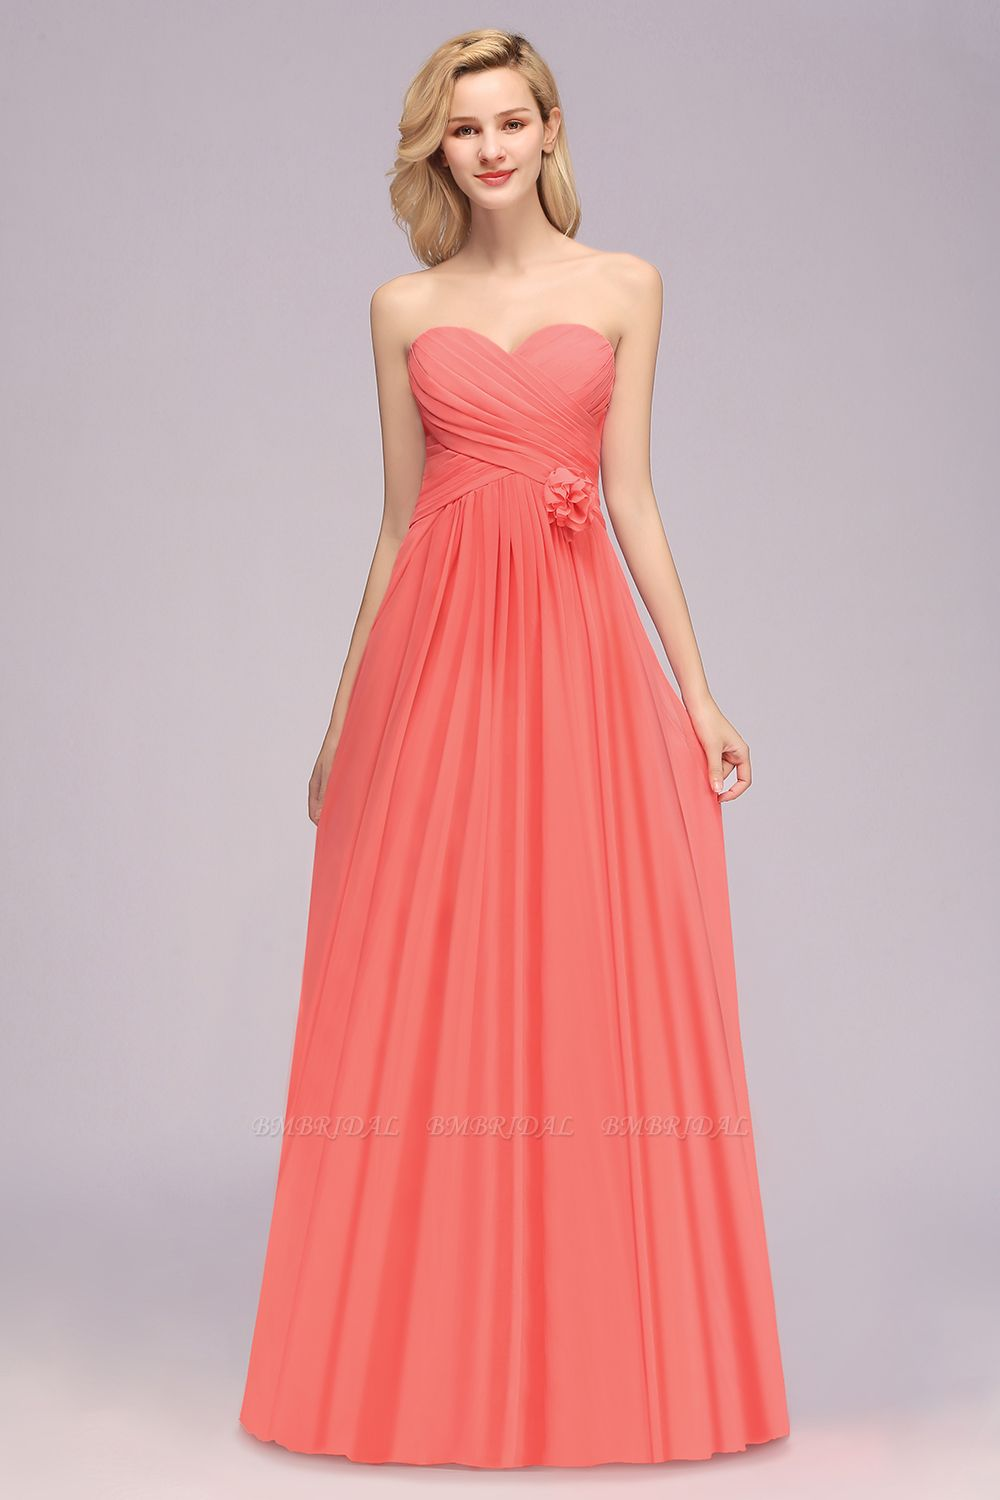 Affordable Sweetheart Strapless Chiffon Bridesmaid Dress with Flower